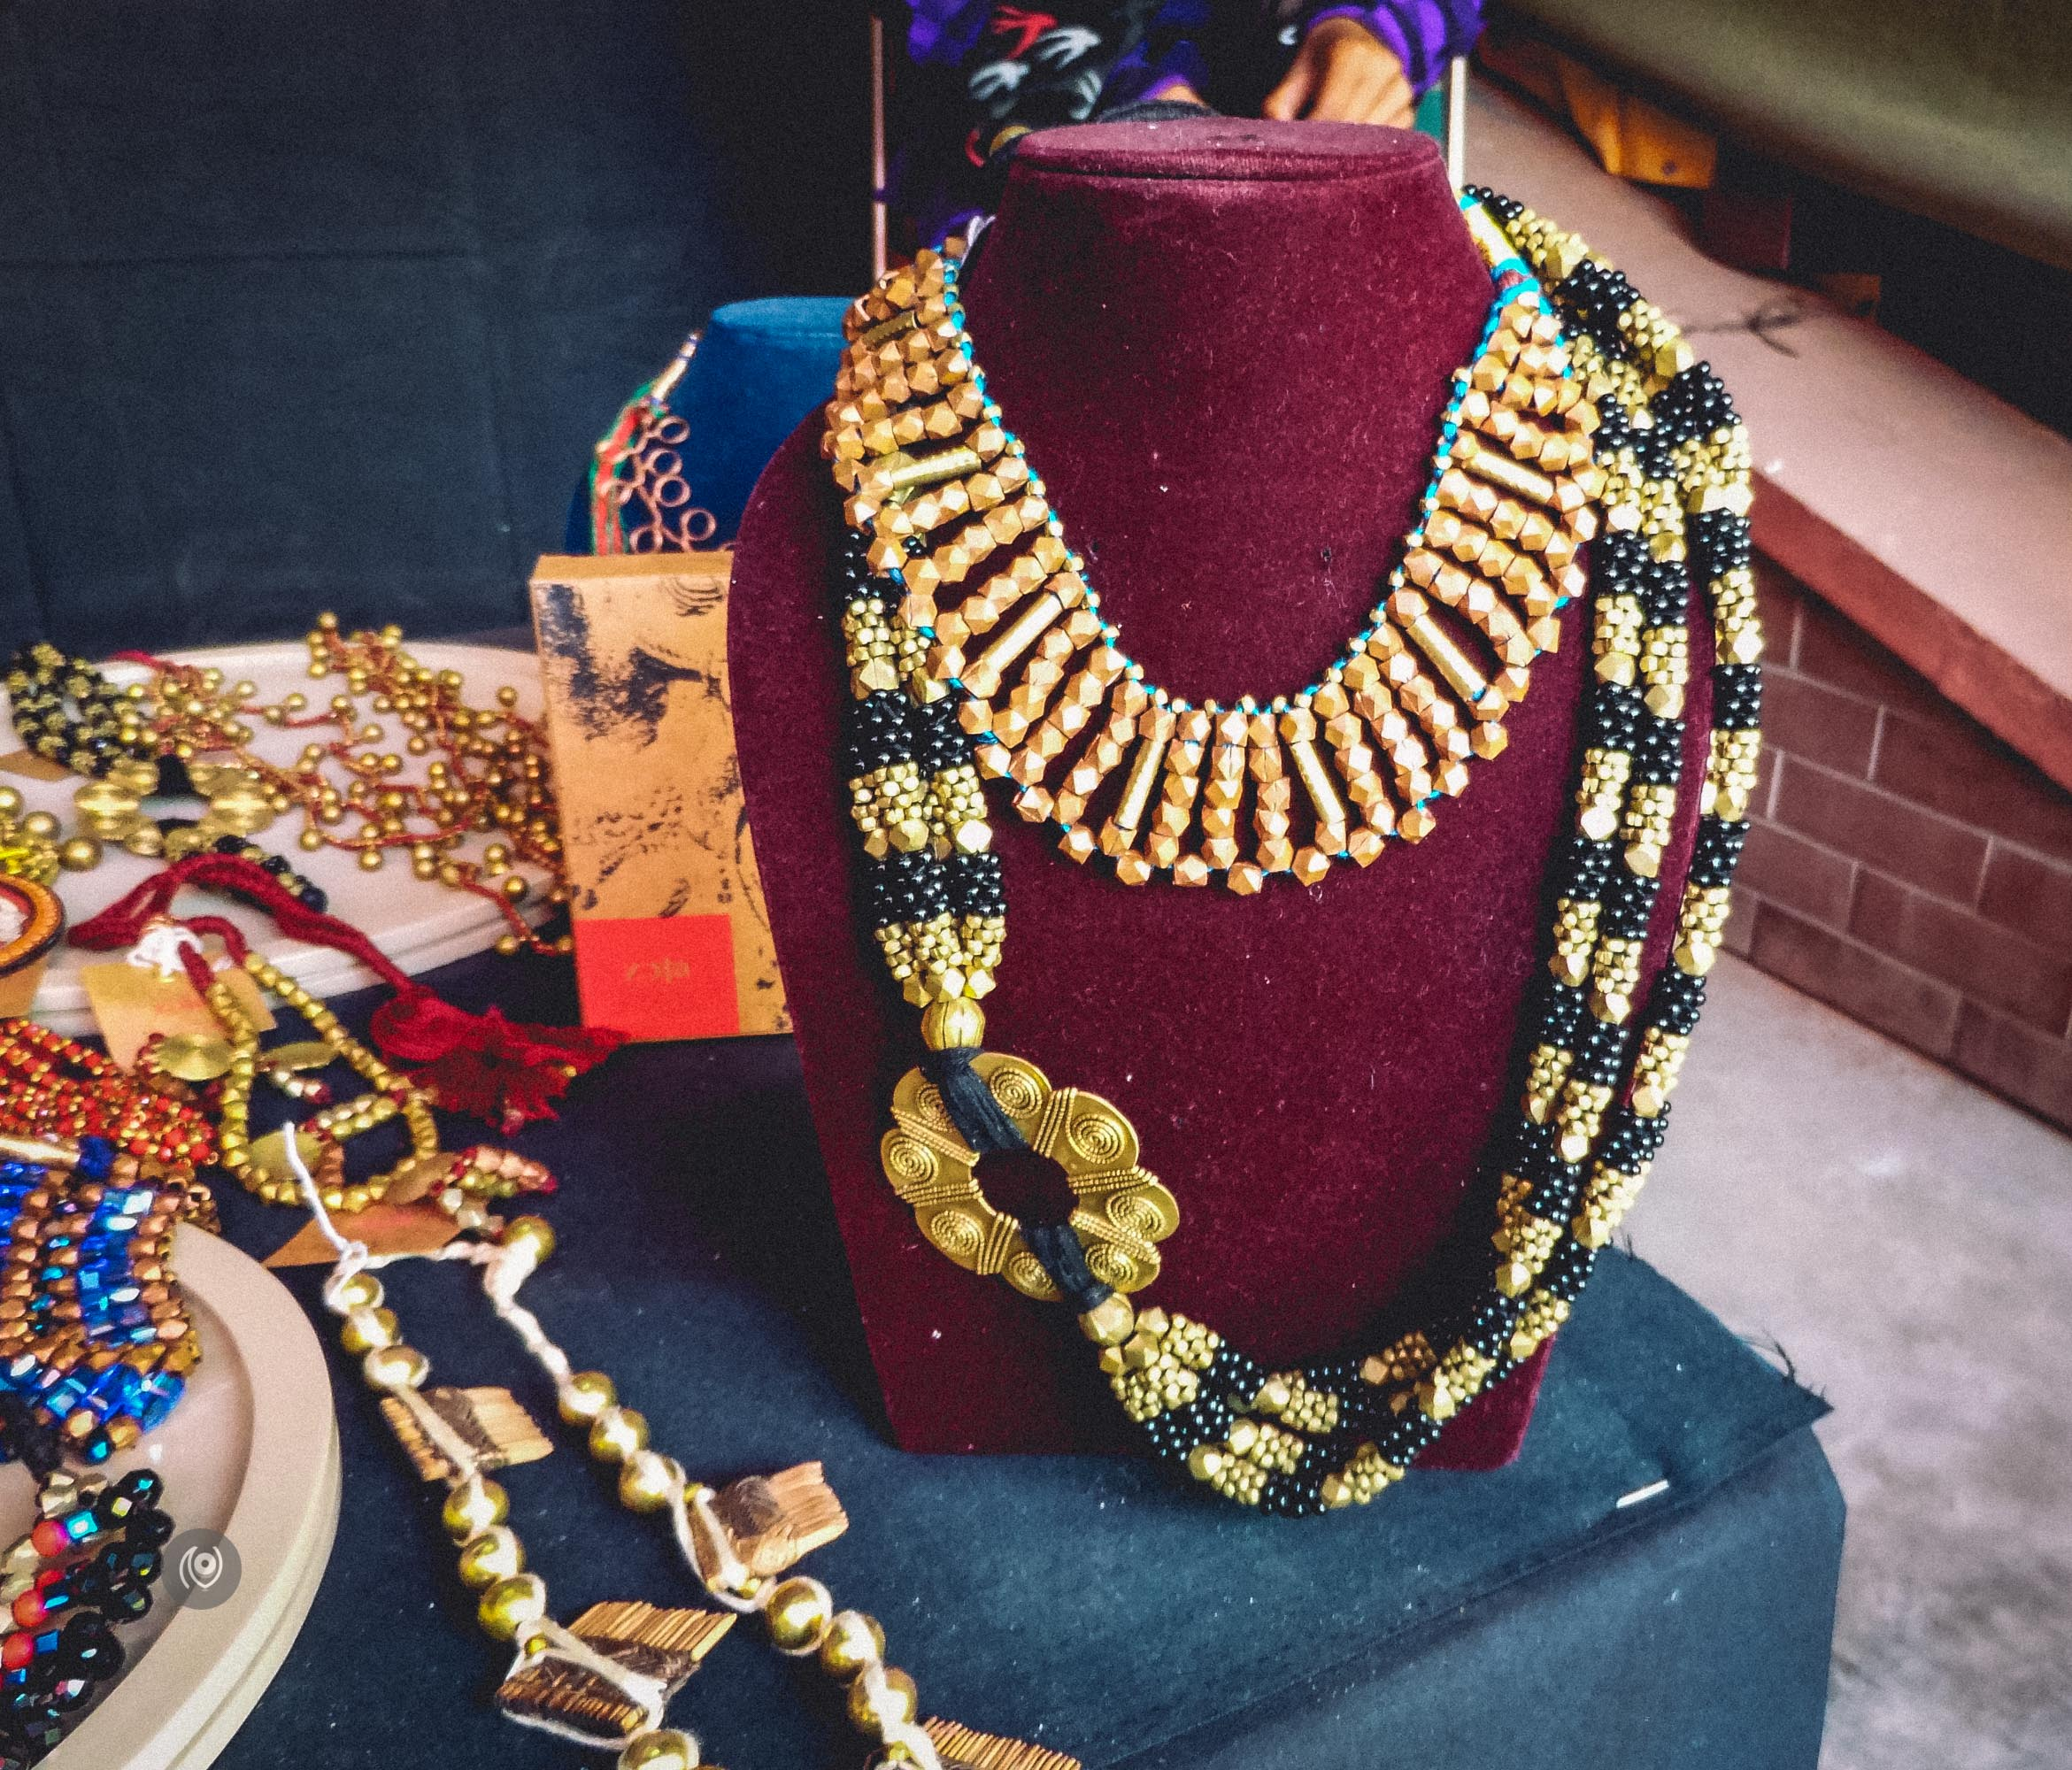 Dastkar Delhi, Design Fair, Nature's Bazaar, #MadeInIndia, Crafts Bazaar, Naina.co, Naina Redhu, Luxury Photographer, Lifestyle Photographer, Luxury Blogger, Lifestyle Blogger, Experience Collector